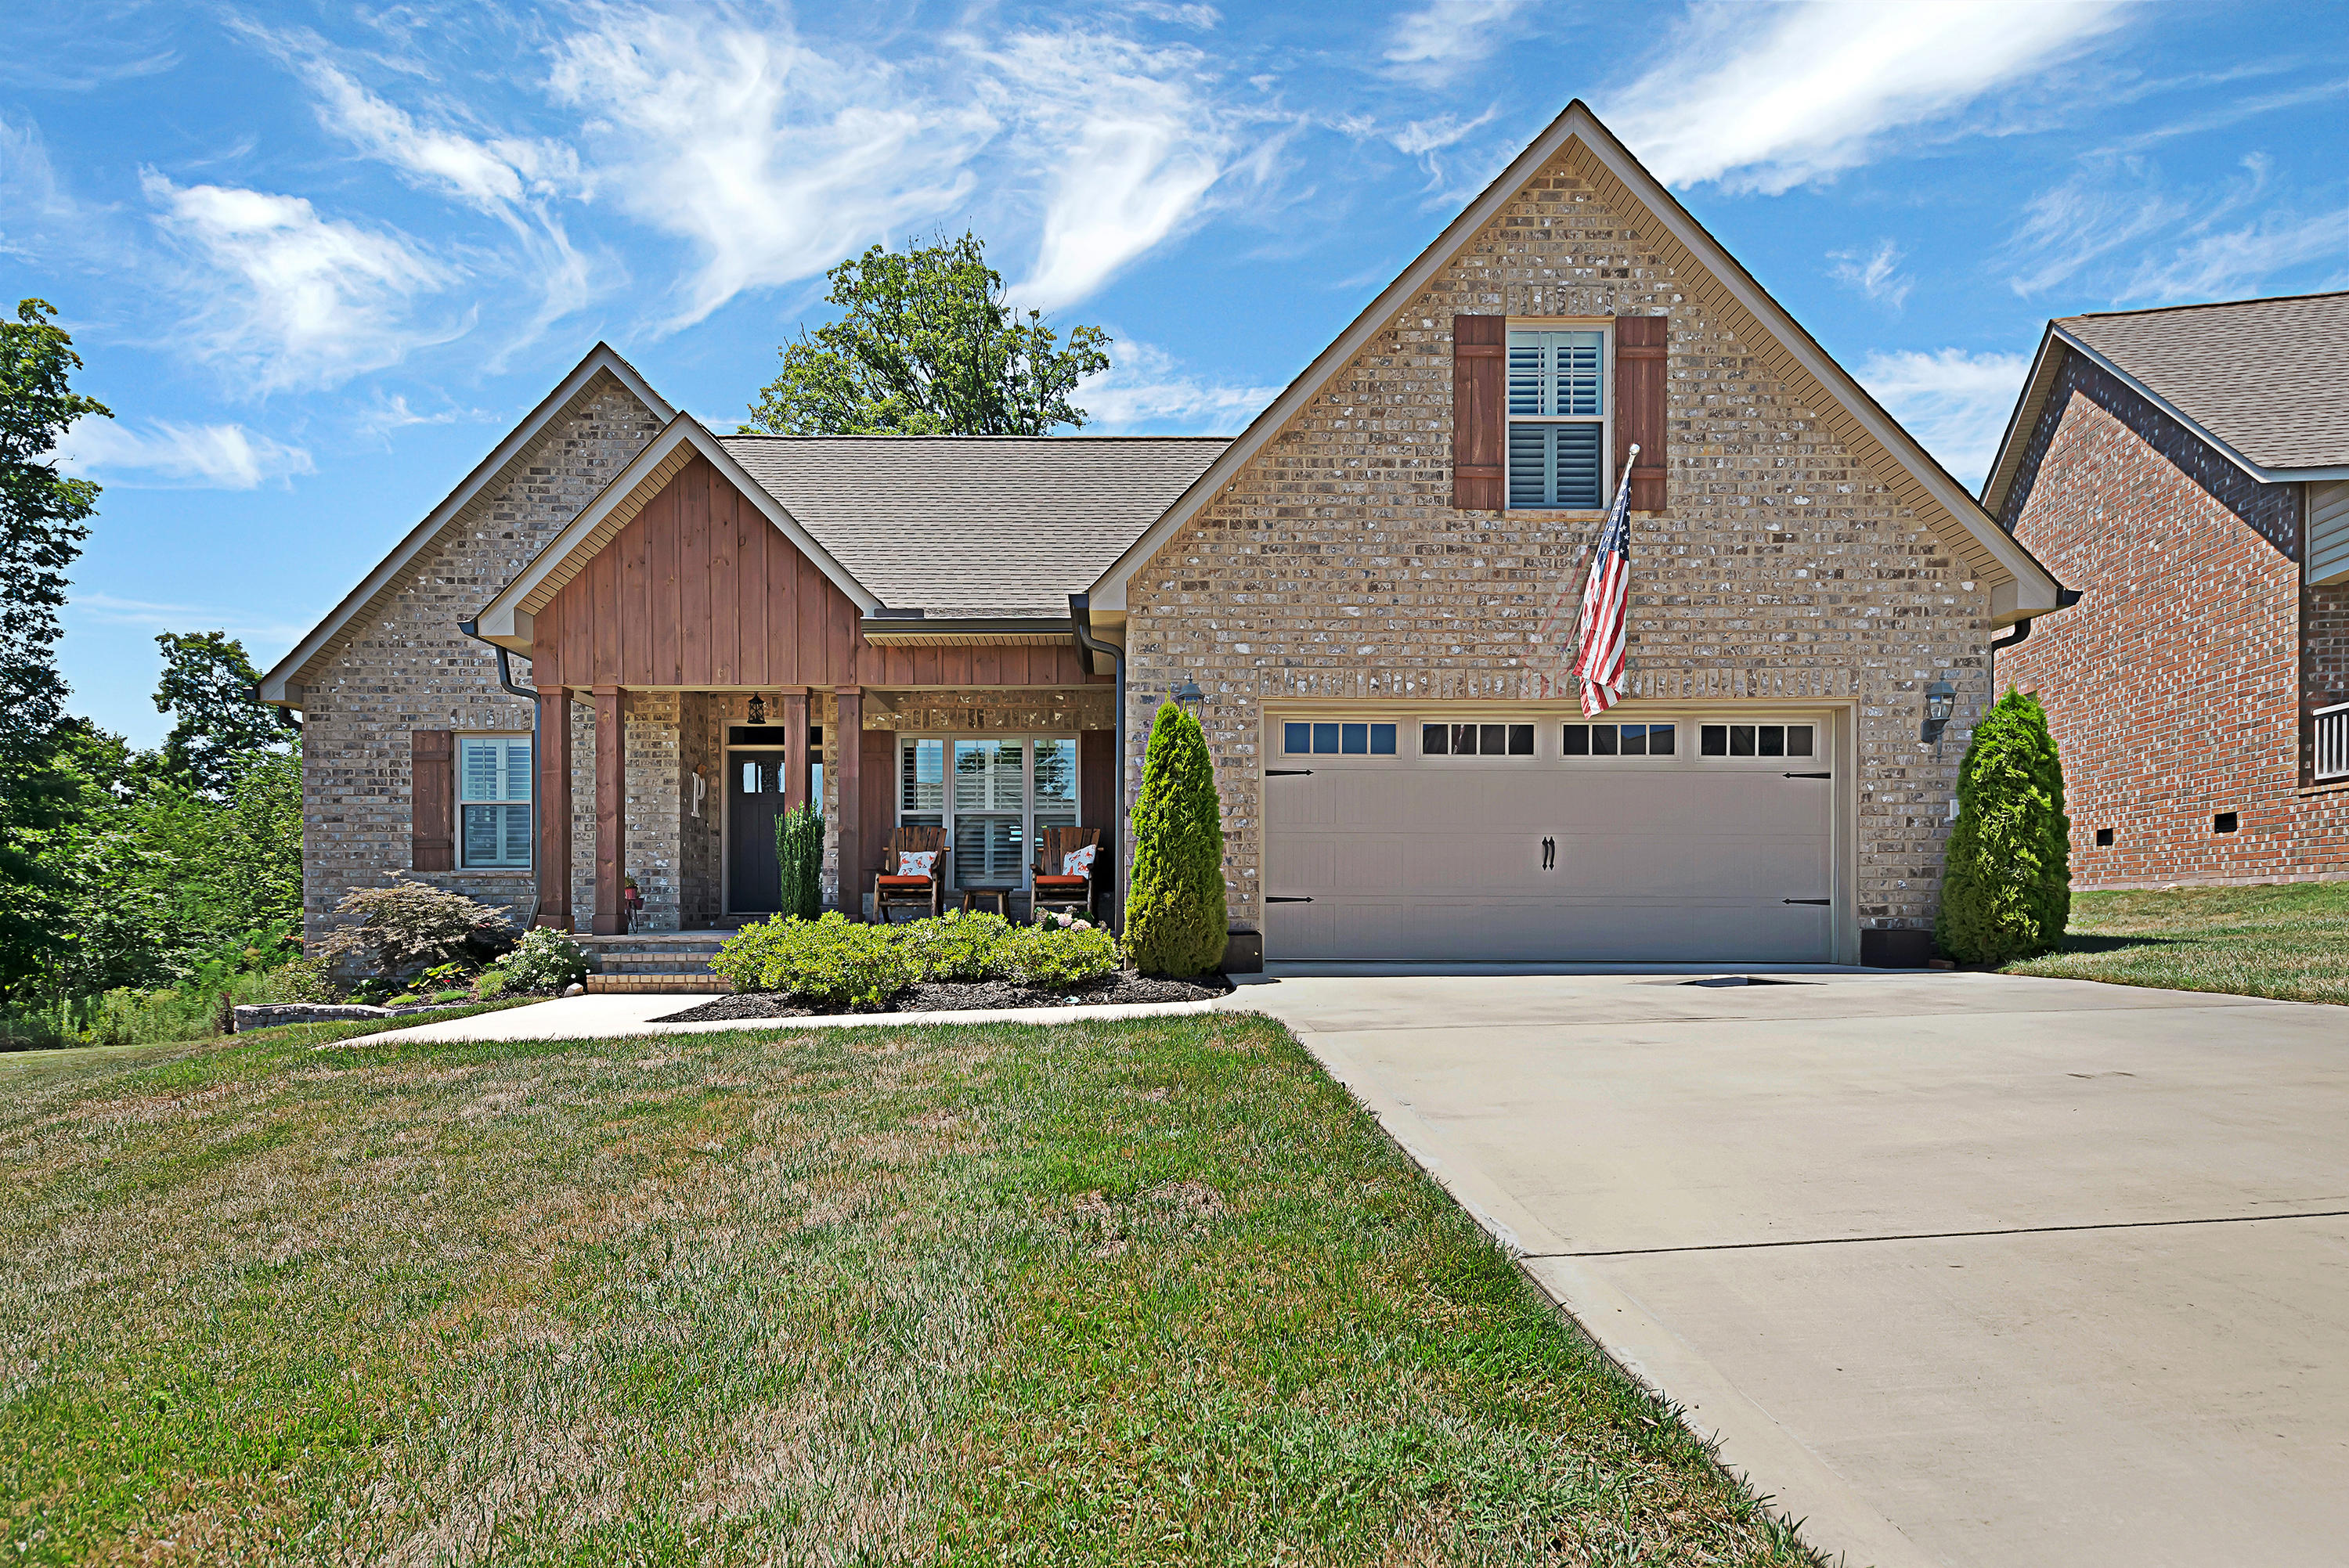 498 Britts, Lenoir City, Tennessee, United States 37772, 3 Bedrooms Bedrooms, ,2 BathroomsBathrooms,Single Family,For Sale,Britts,1125069